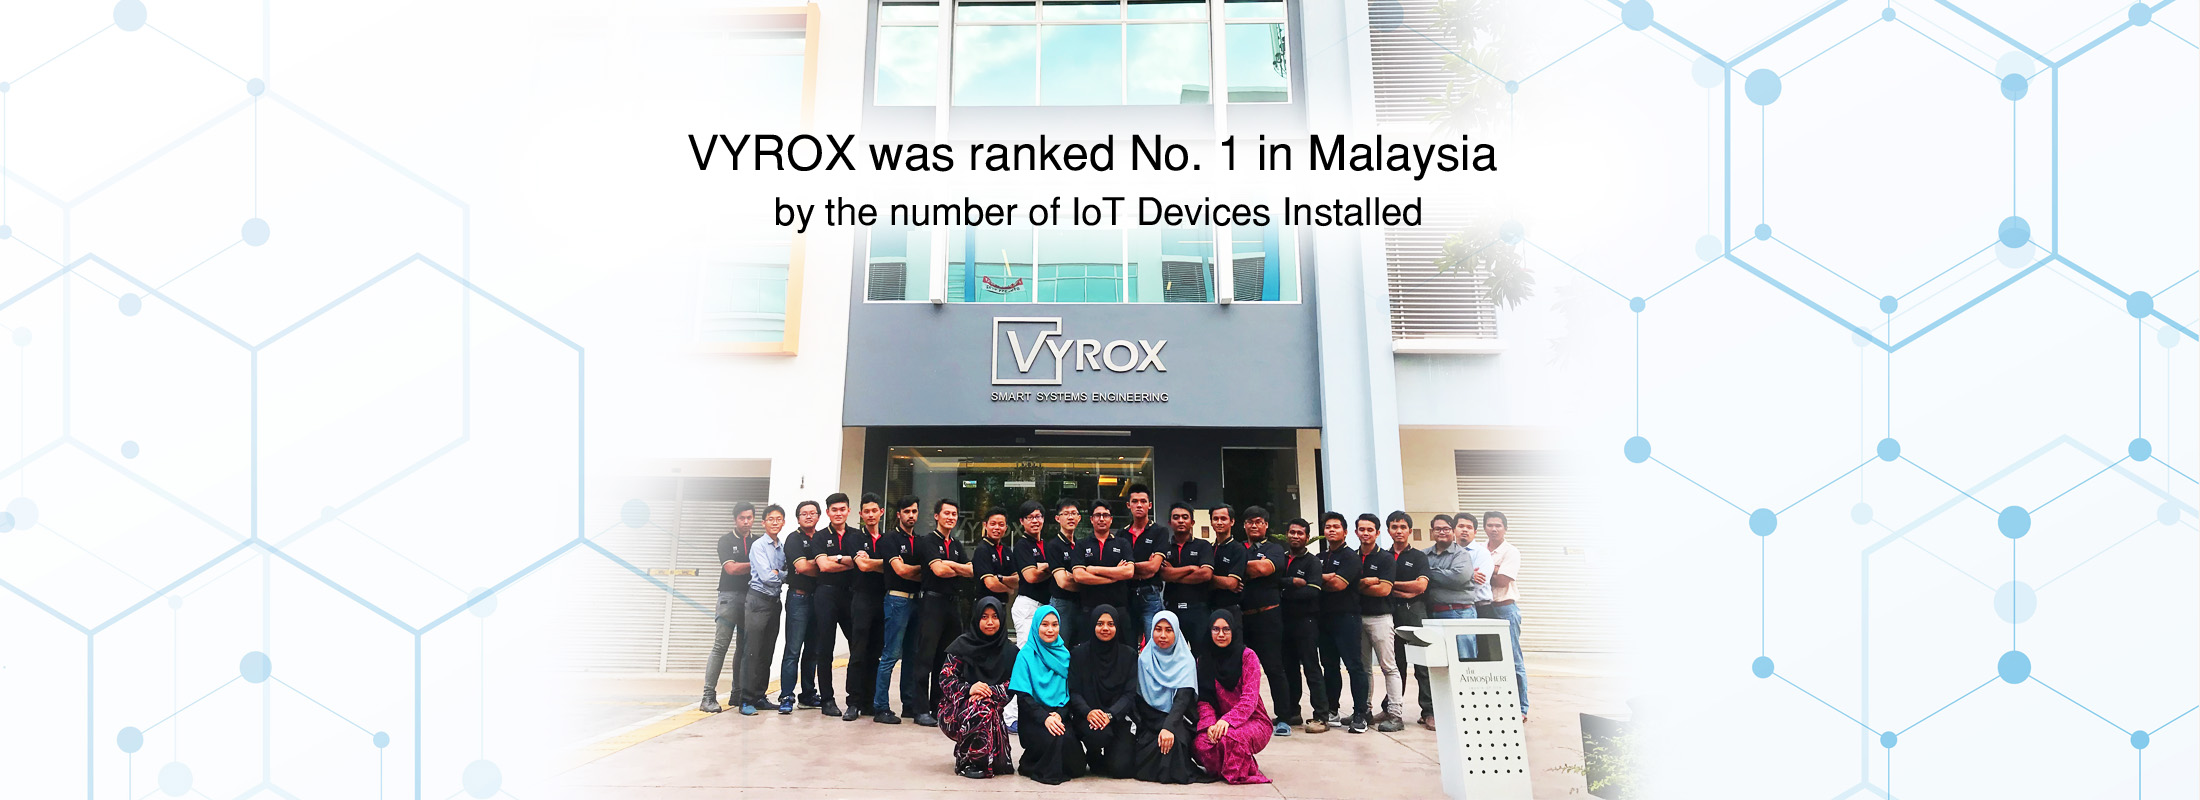 VYROX was ranked No. 1 in Malaysia by the number of IoT Devices Installed